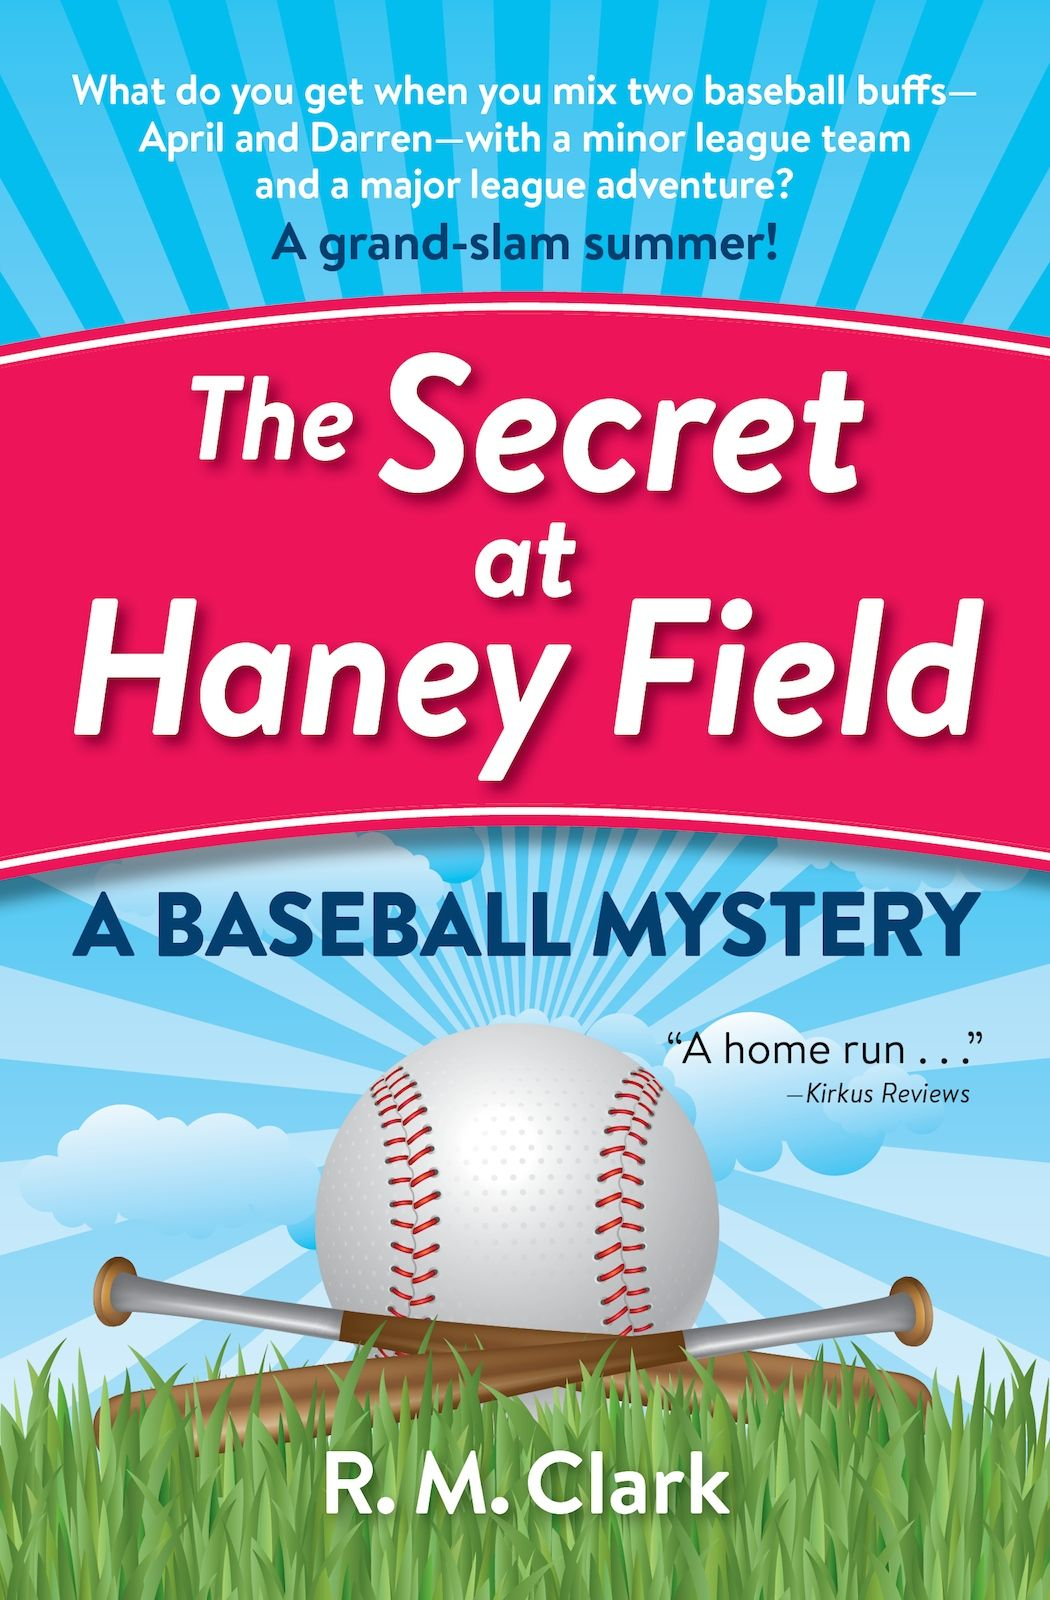 MB Publishing's New Middle-Grade Baseball Novel for Mystery Fans by R.M. Clark